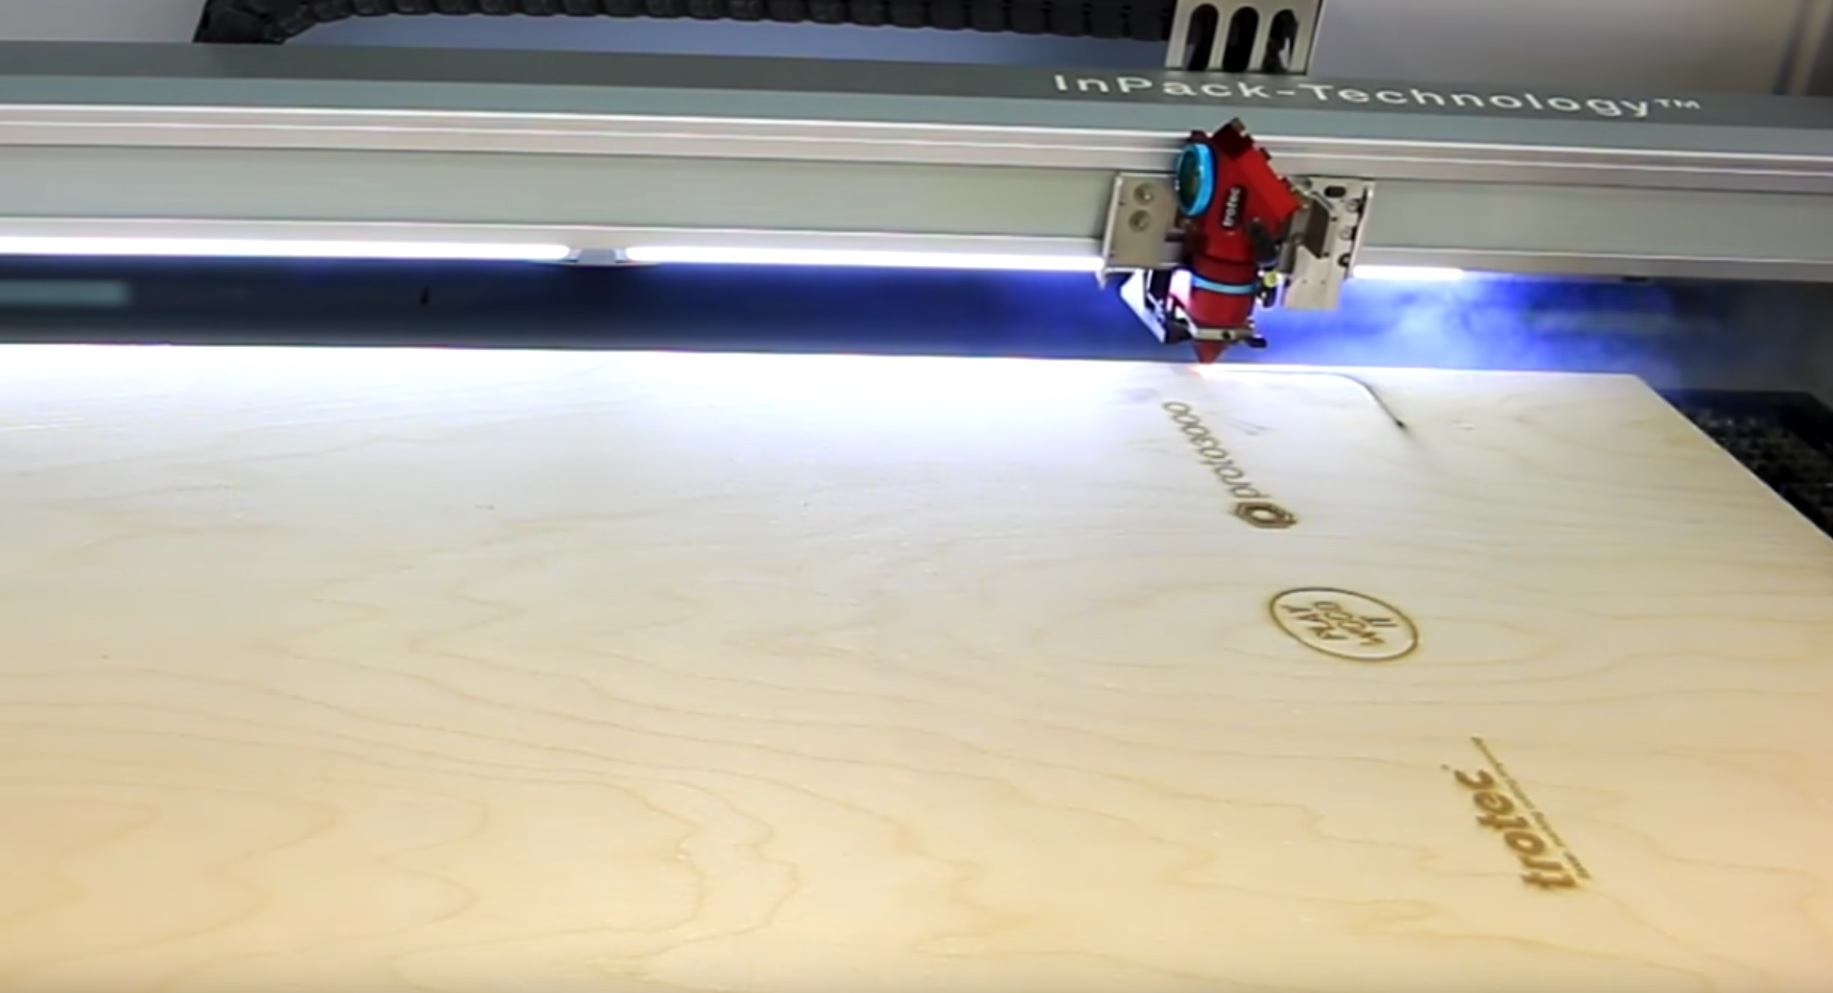 Picture of Laser Cutting the Wood